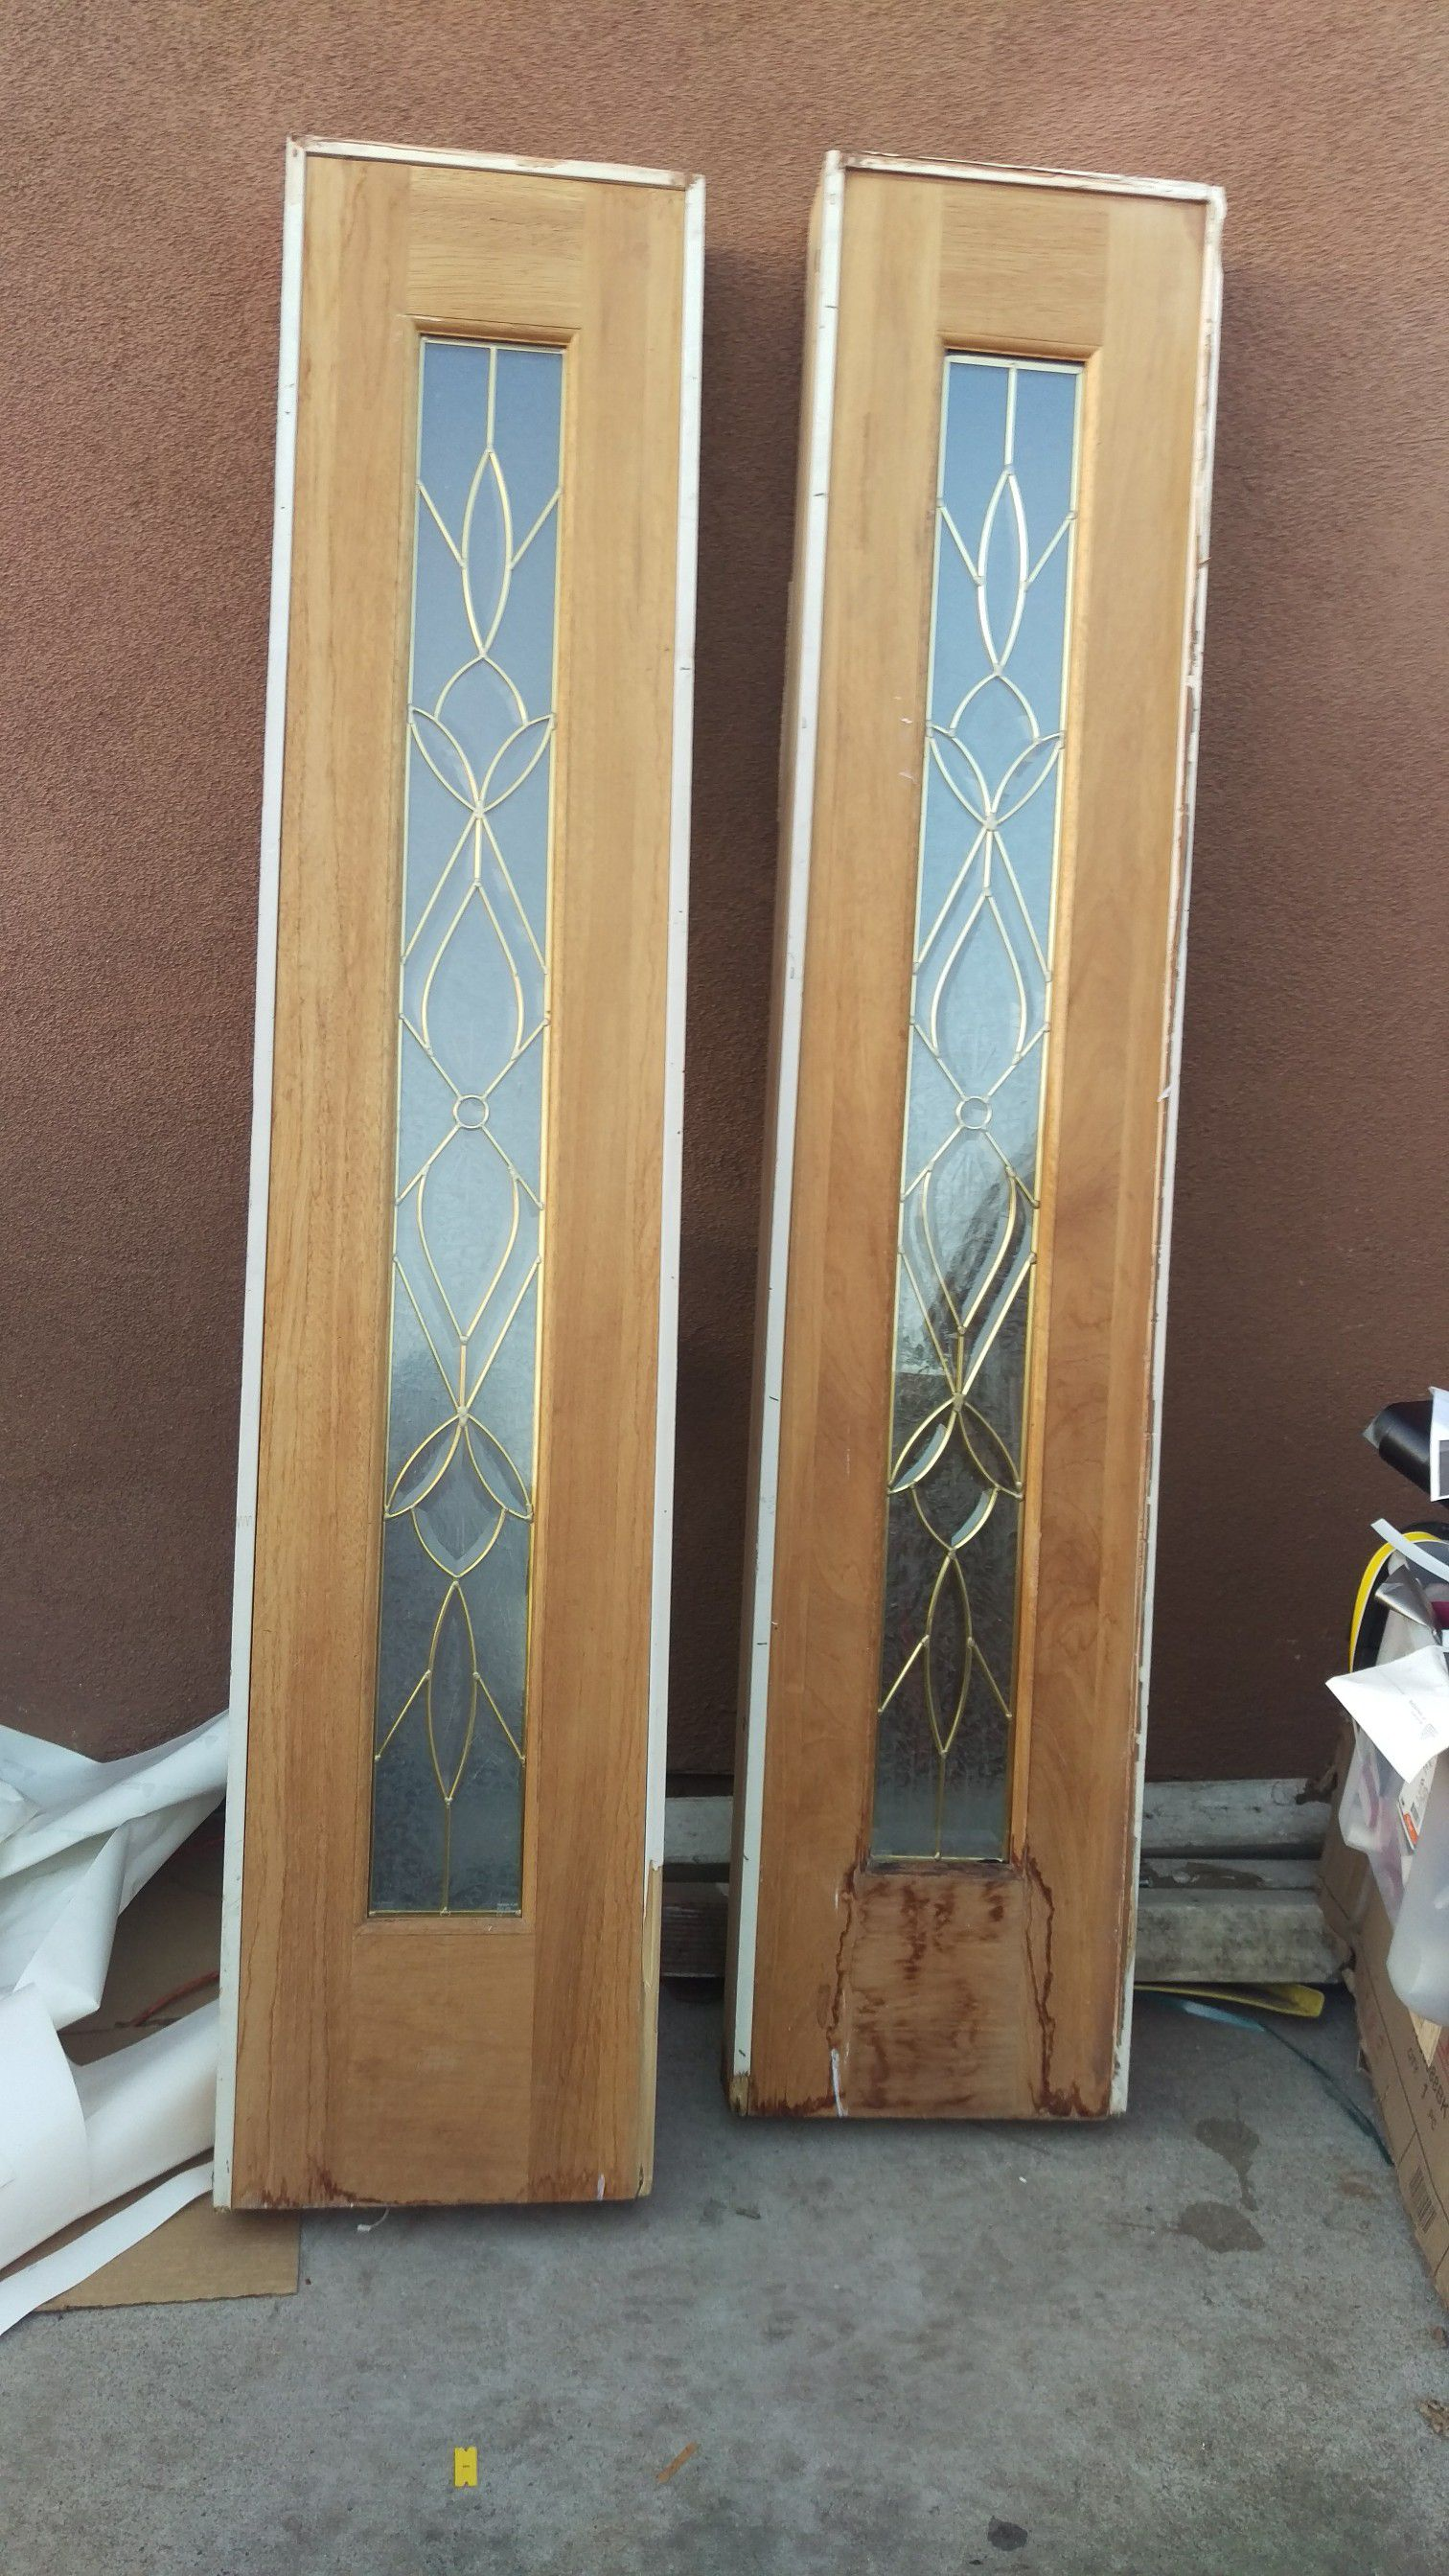 42 inches X 79 mahogany entry door plus 2 side one light door 15X 79 inches